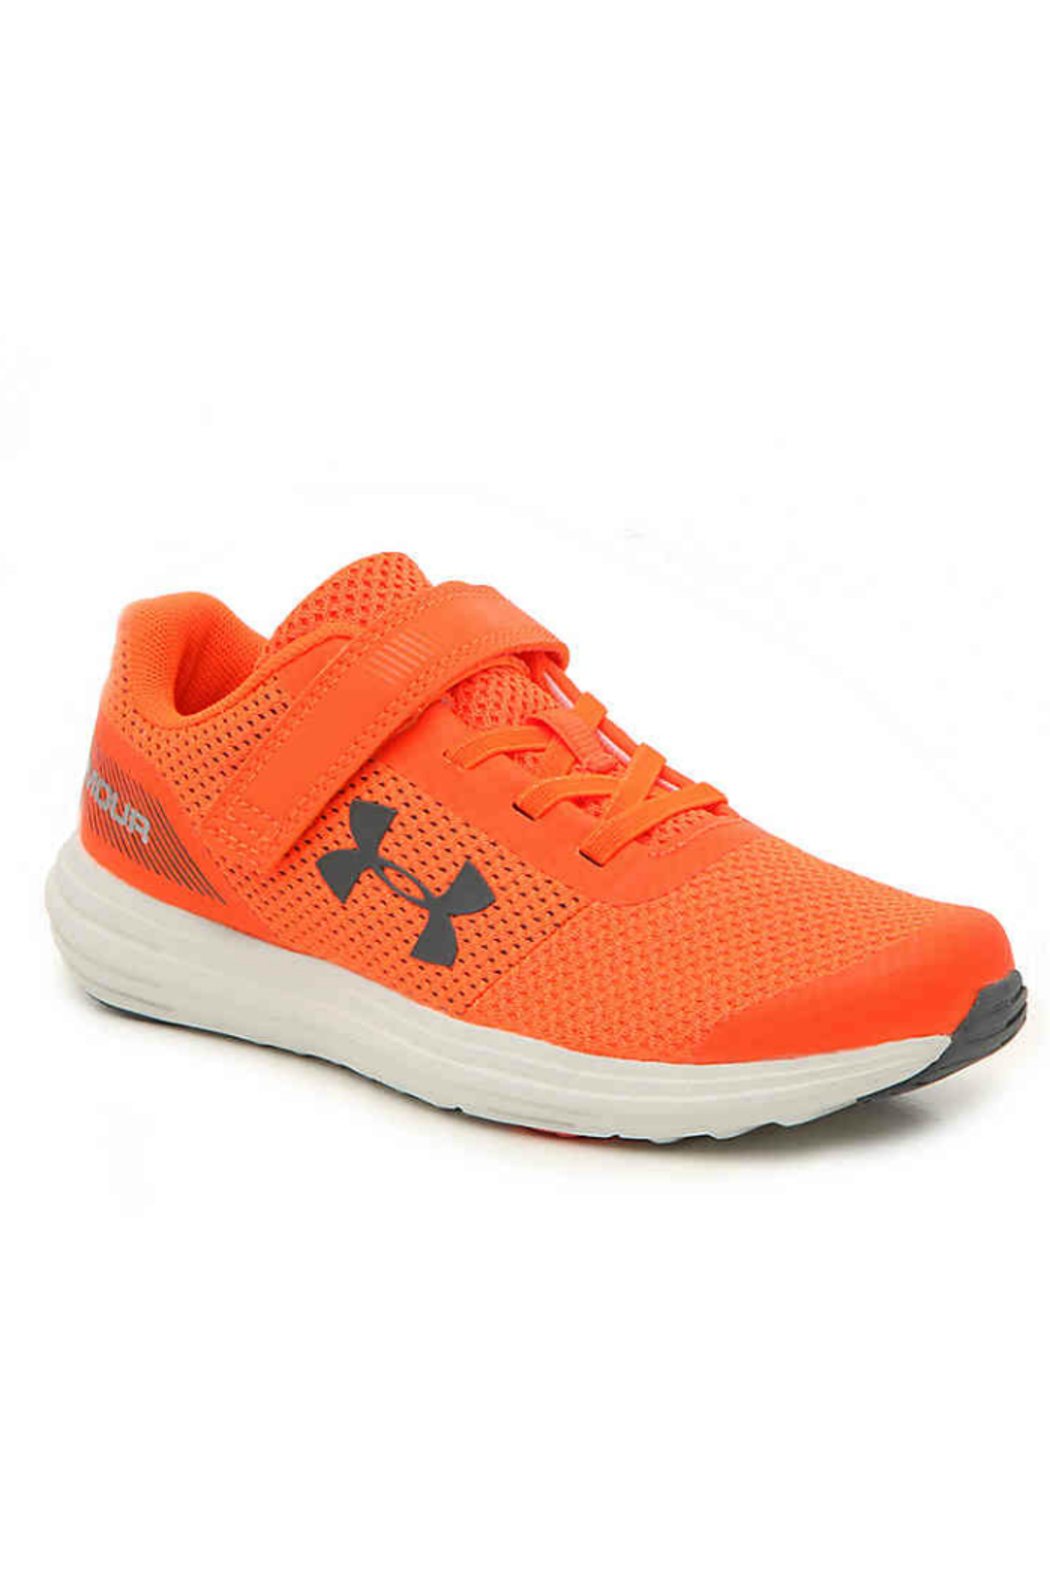 Under Armour UA GPS SURGE AC - Front Cropped Image